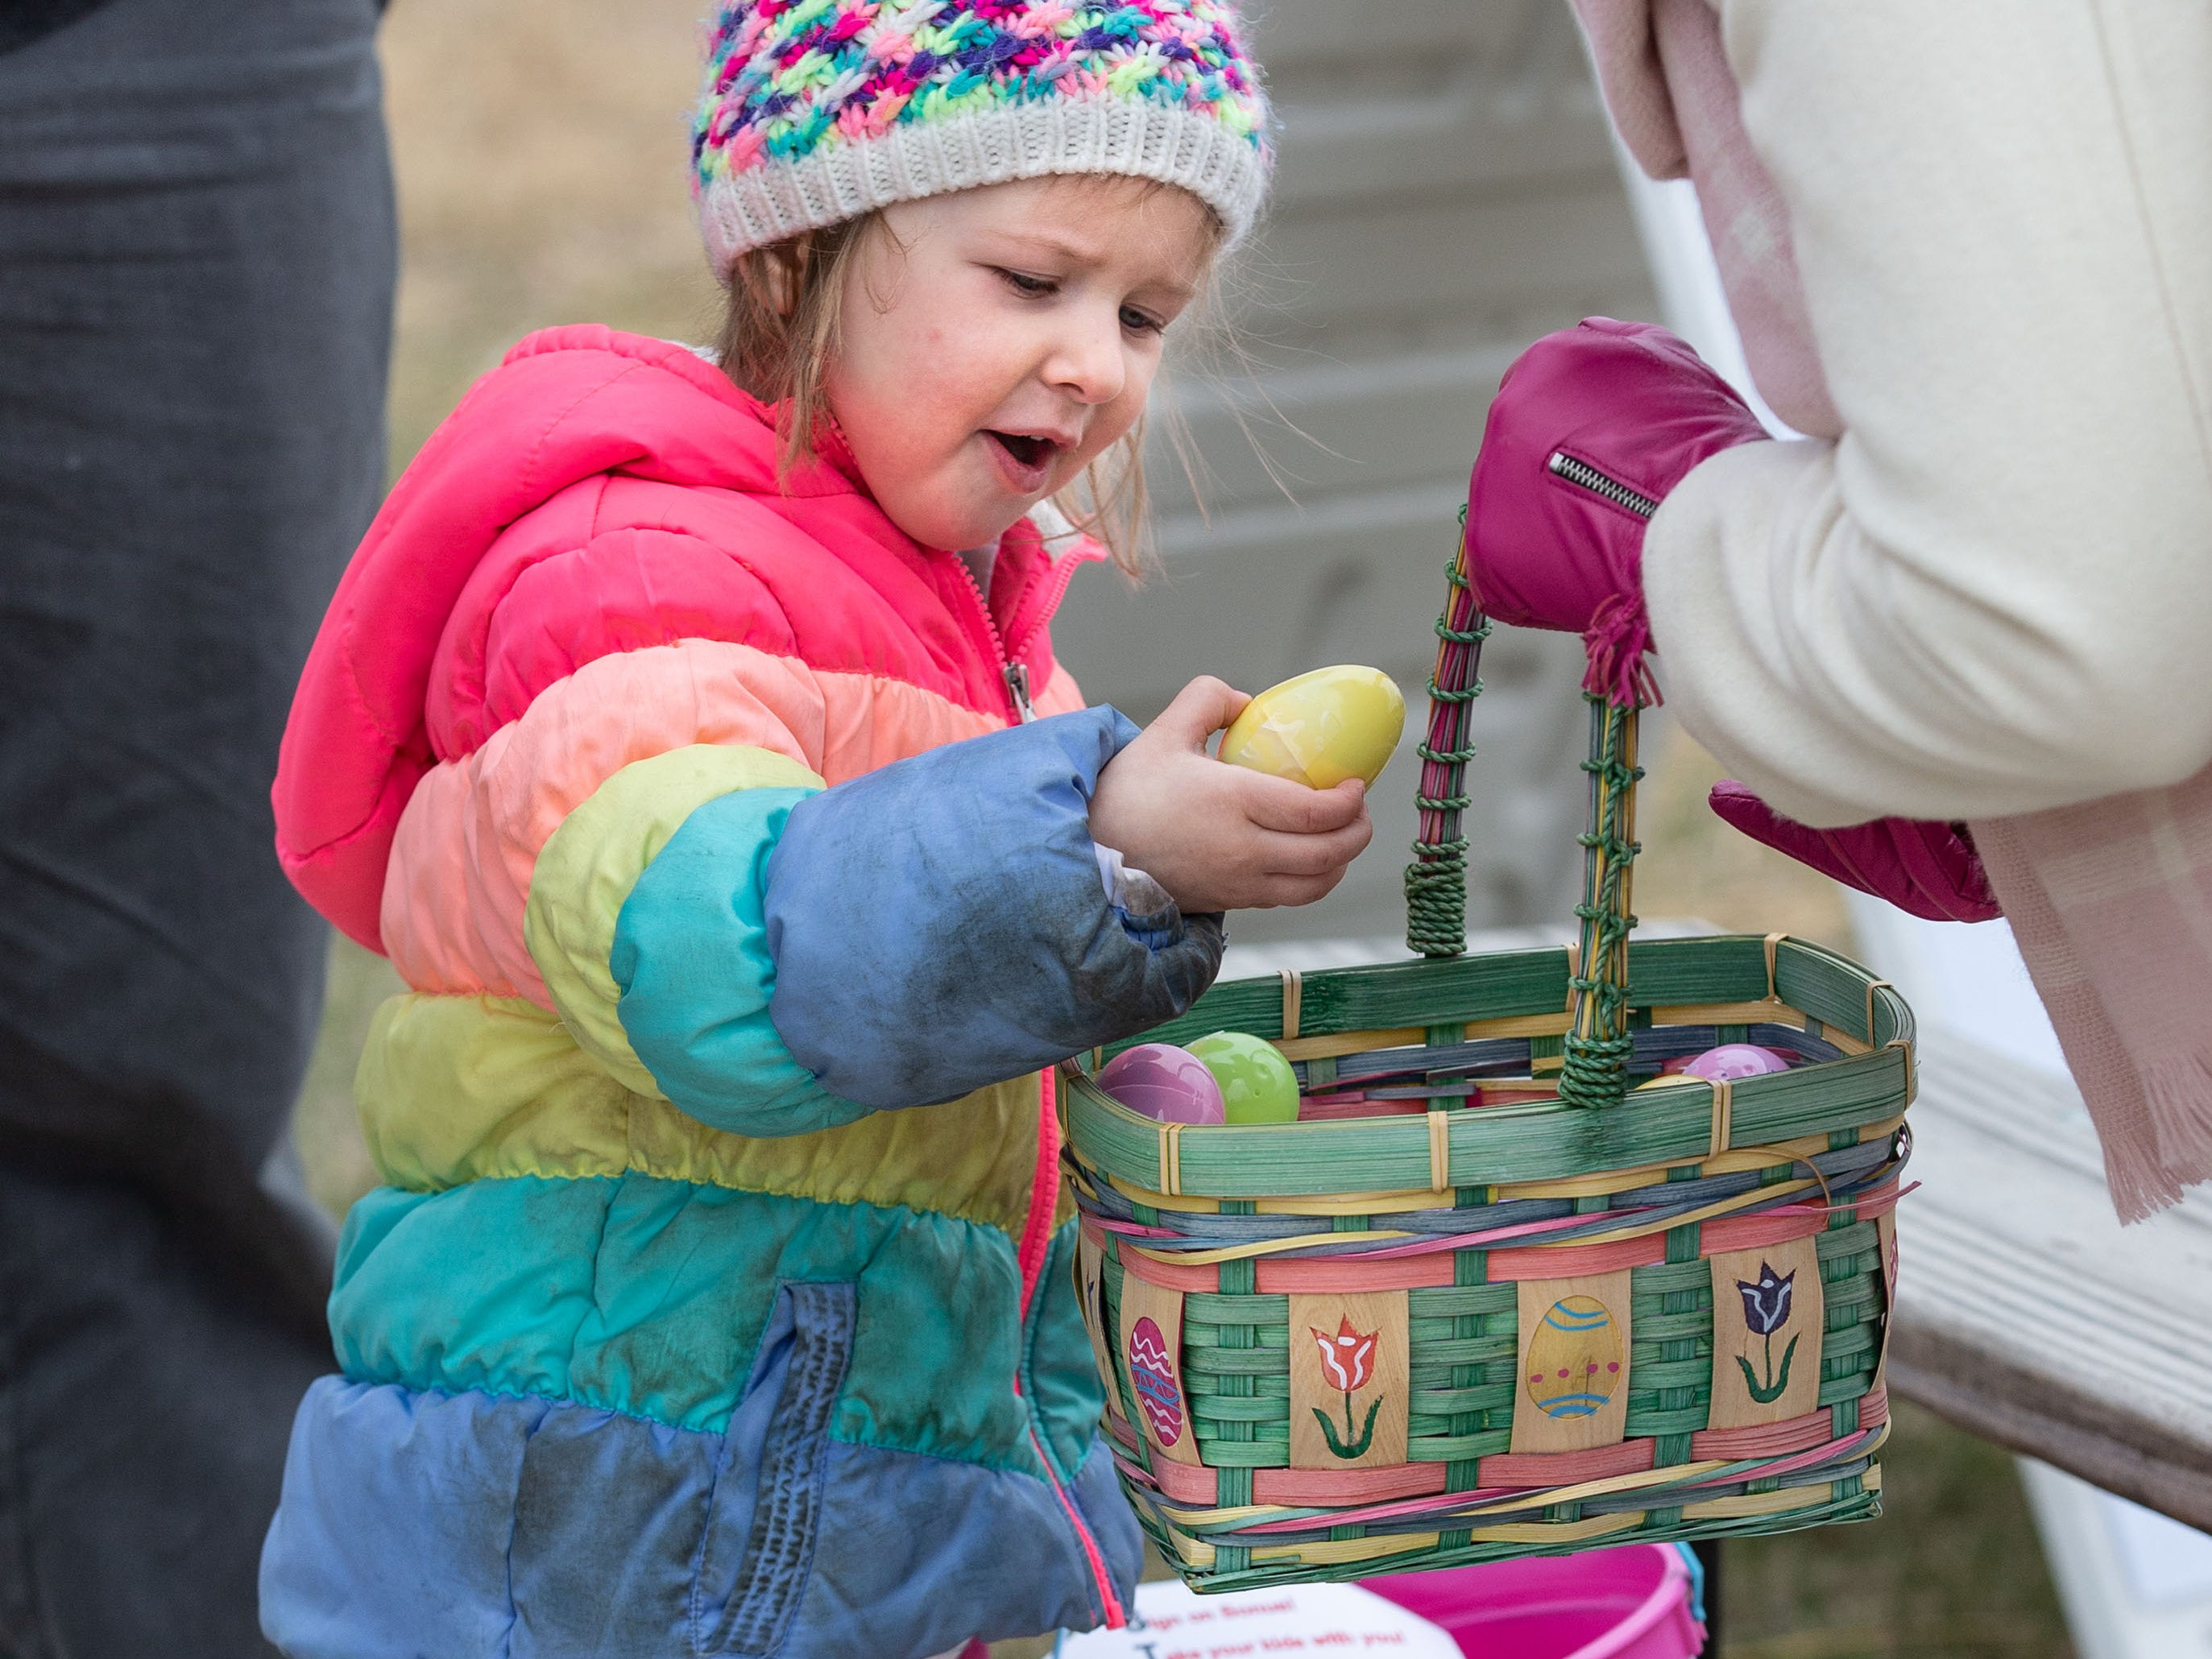 Three-year-old Lucy Guerino of Waukesha selects a candy filled egg during the annual Easter Extravaganza egg hunt in Lisbon Community Park on Saturday, April 13, 2019. Sponsored by the Lisbon Park Department, the hunt features treats from area businesses and organizations, pictures with the Easter Bunny, local emergency response vehicles and more.